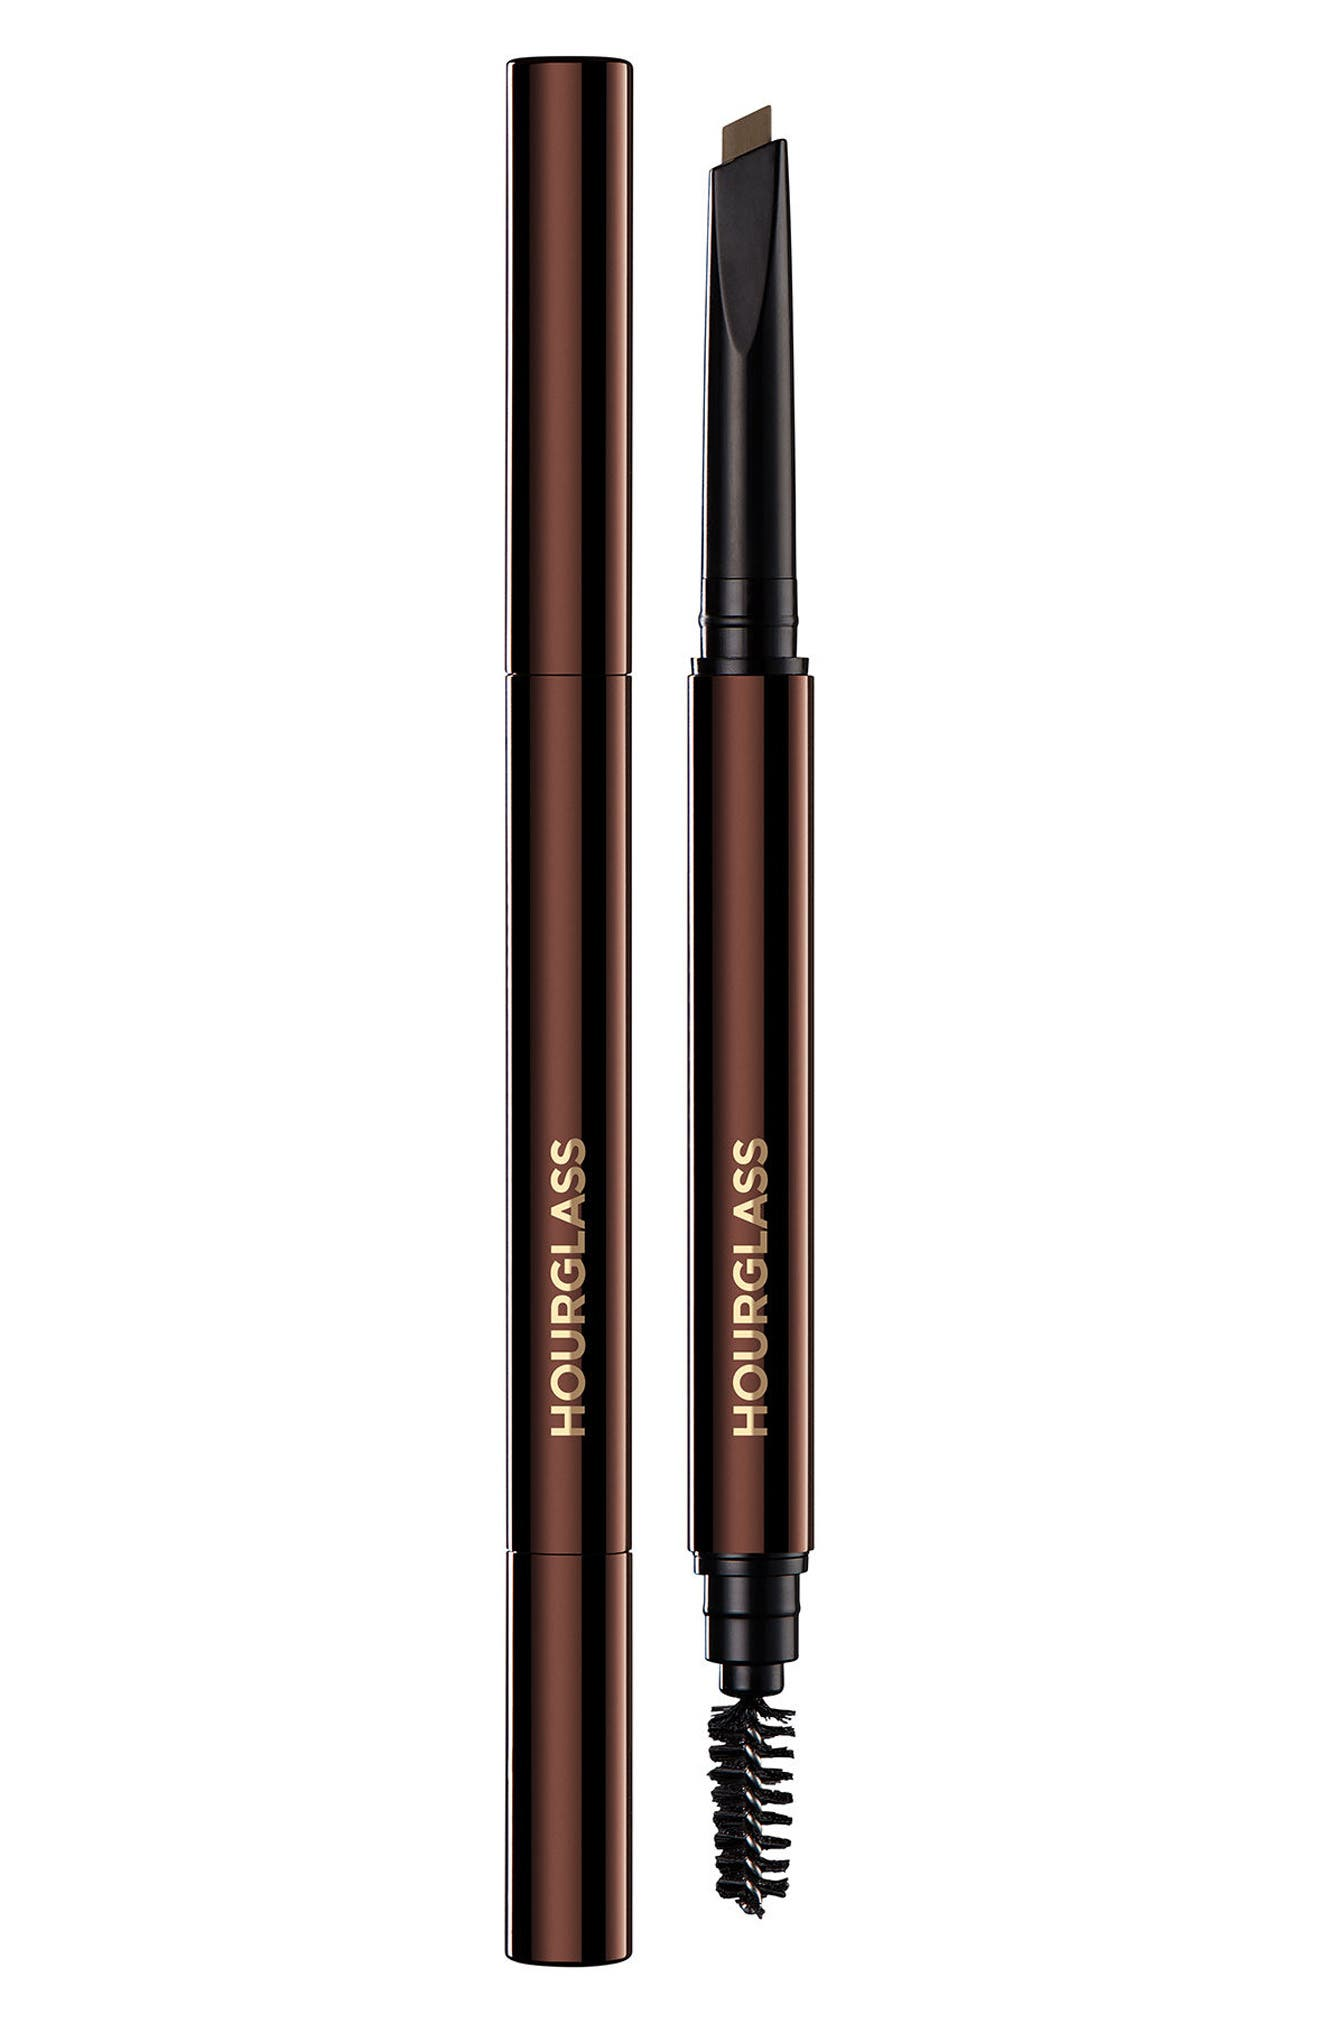 Brow Wax Nordstrom